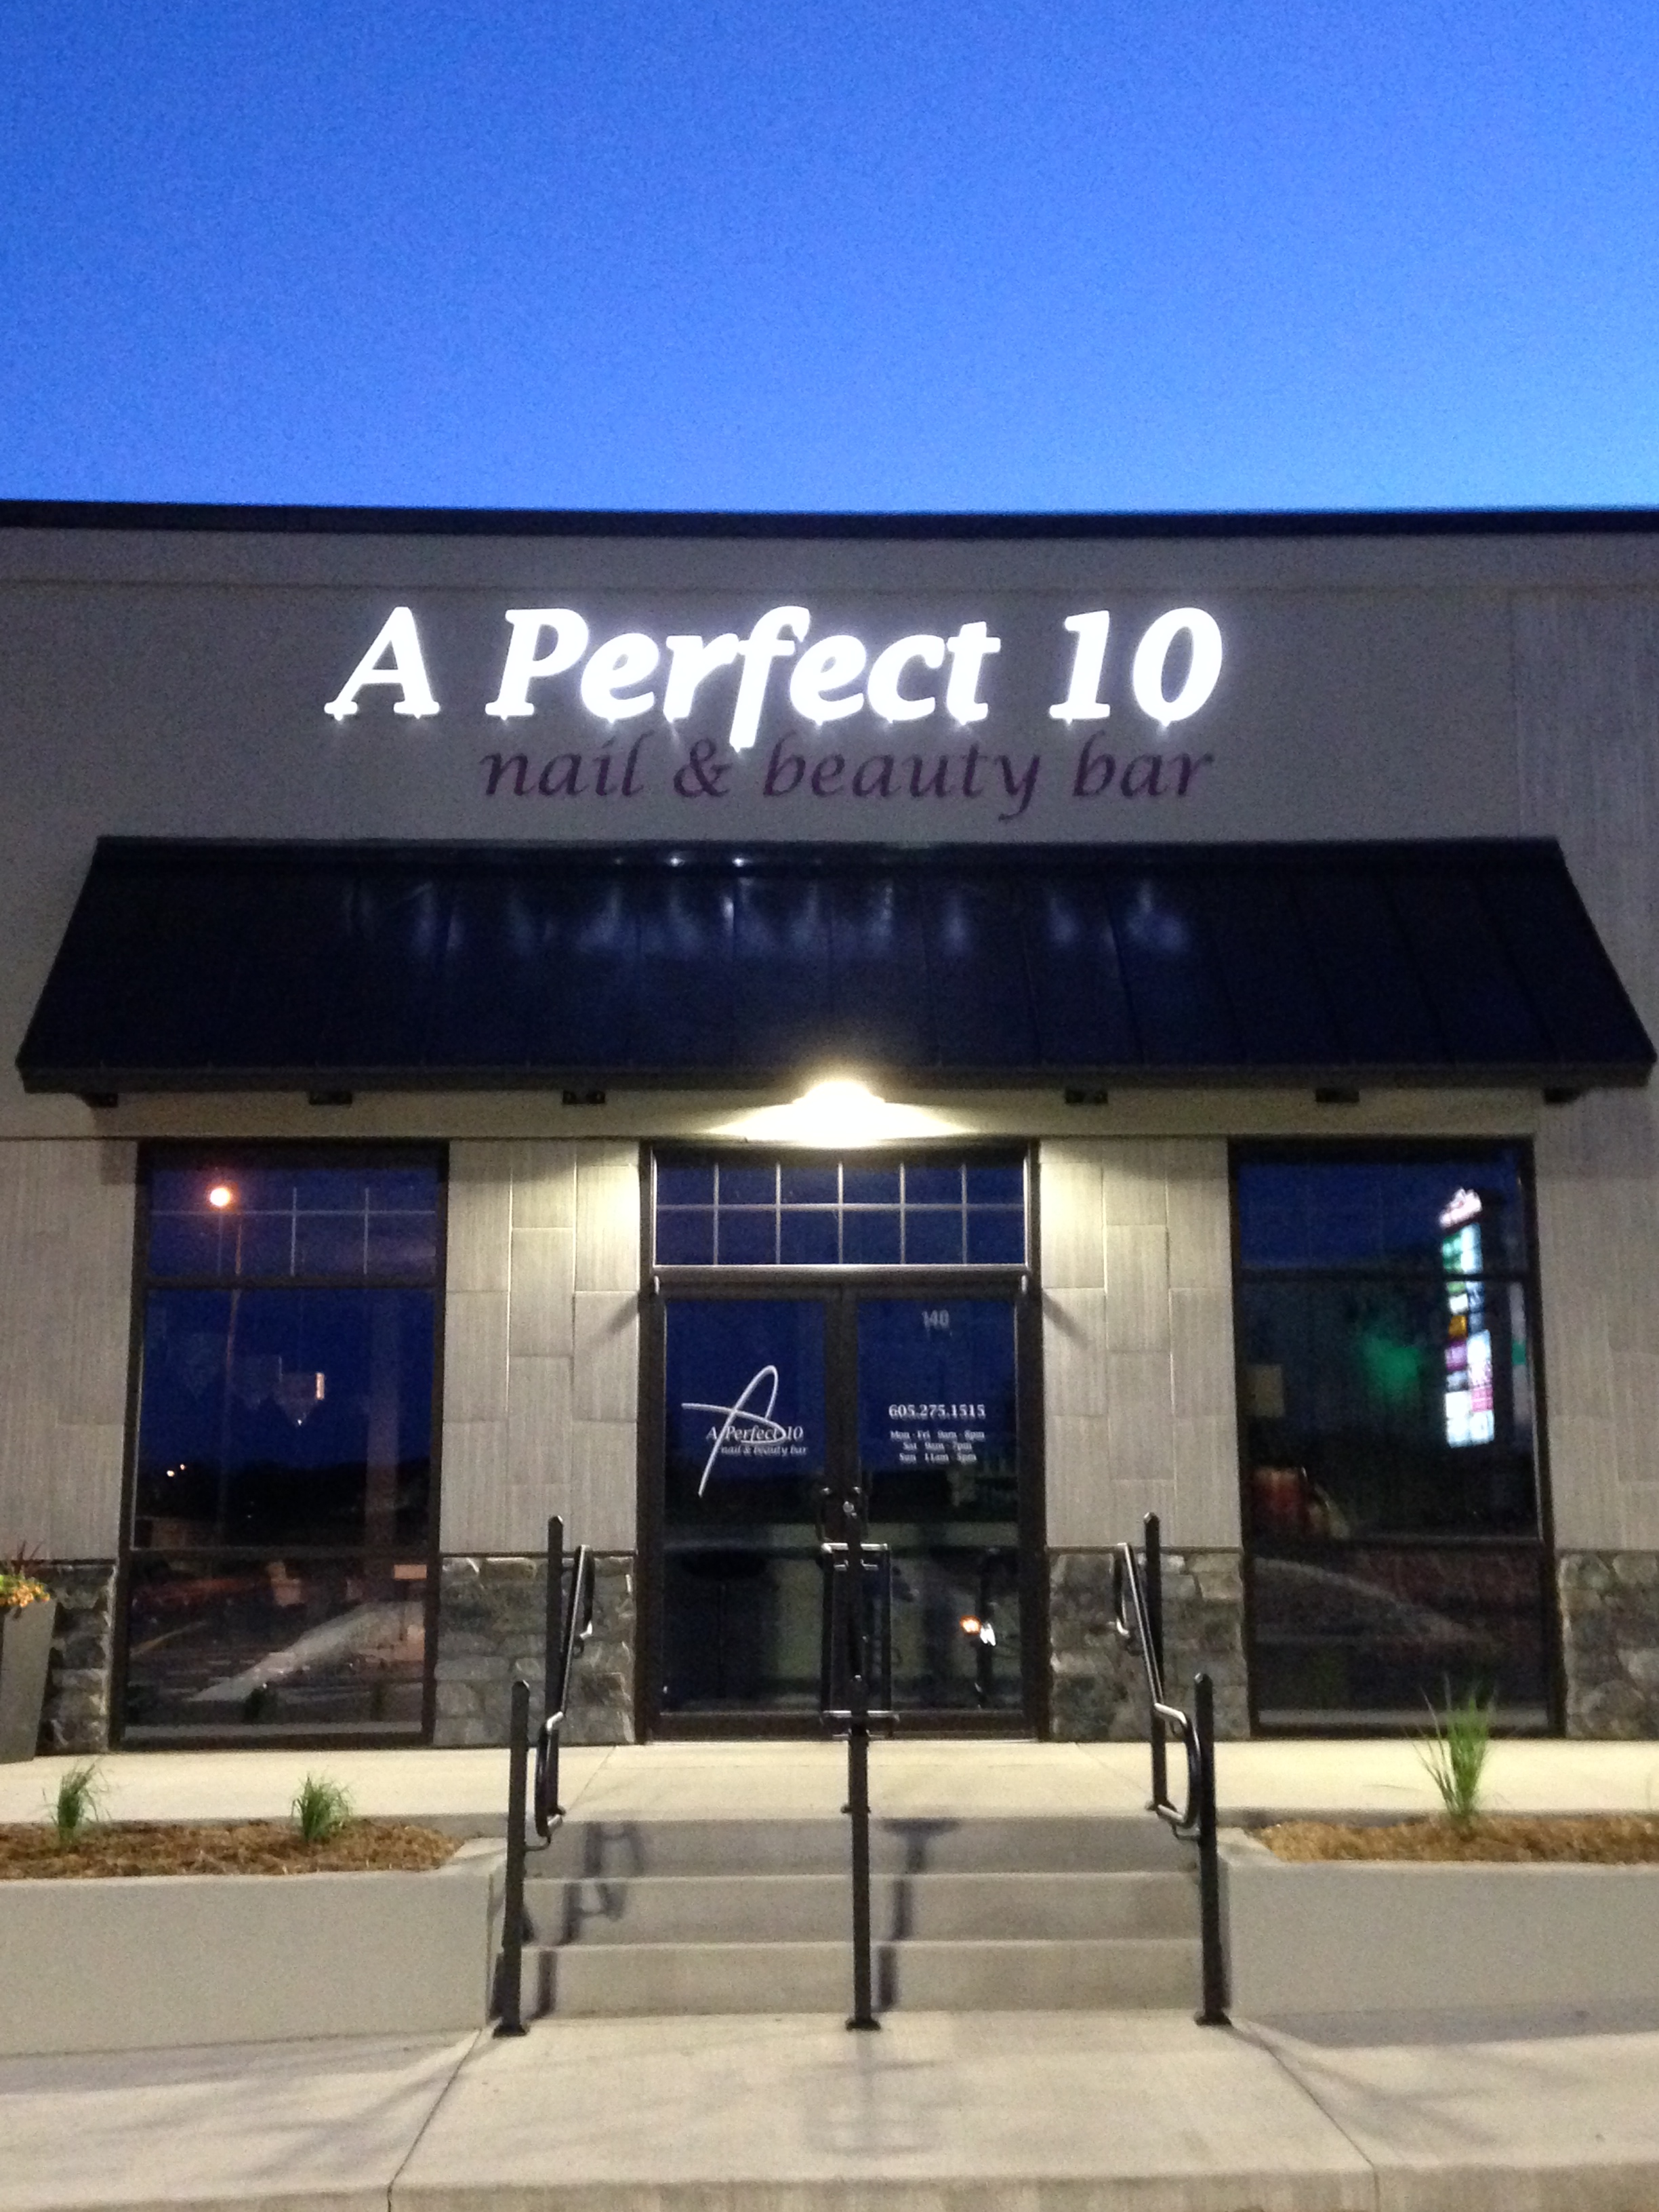 Exterior commercial signage creative surfaces blog for A perfect 10 salon